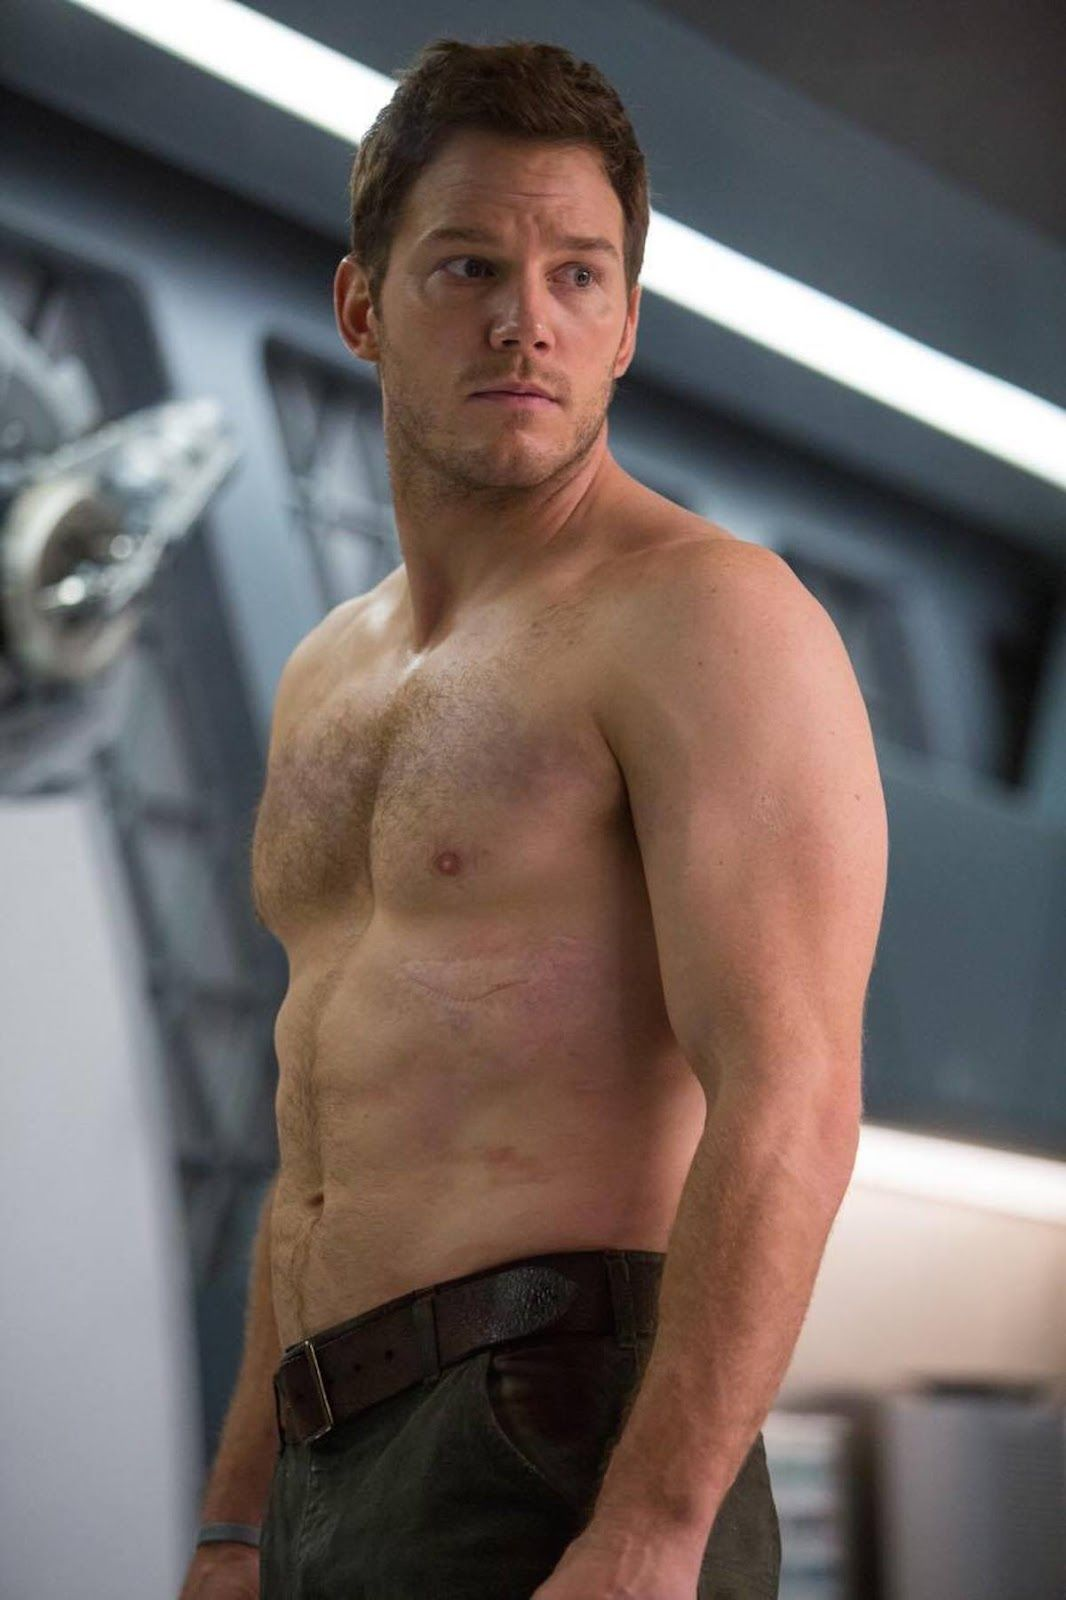 Chris Pratt Shirtless Guardians Jpg 1 066 1 600 Pixels Chris Pratt Shirtless Chris Pratt Chris Pratt Passengers